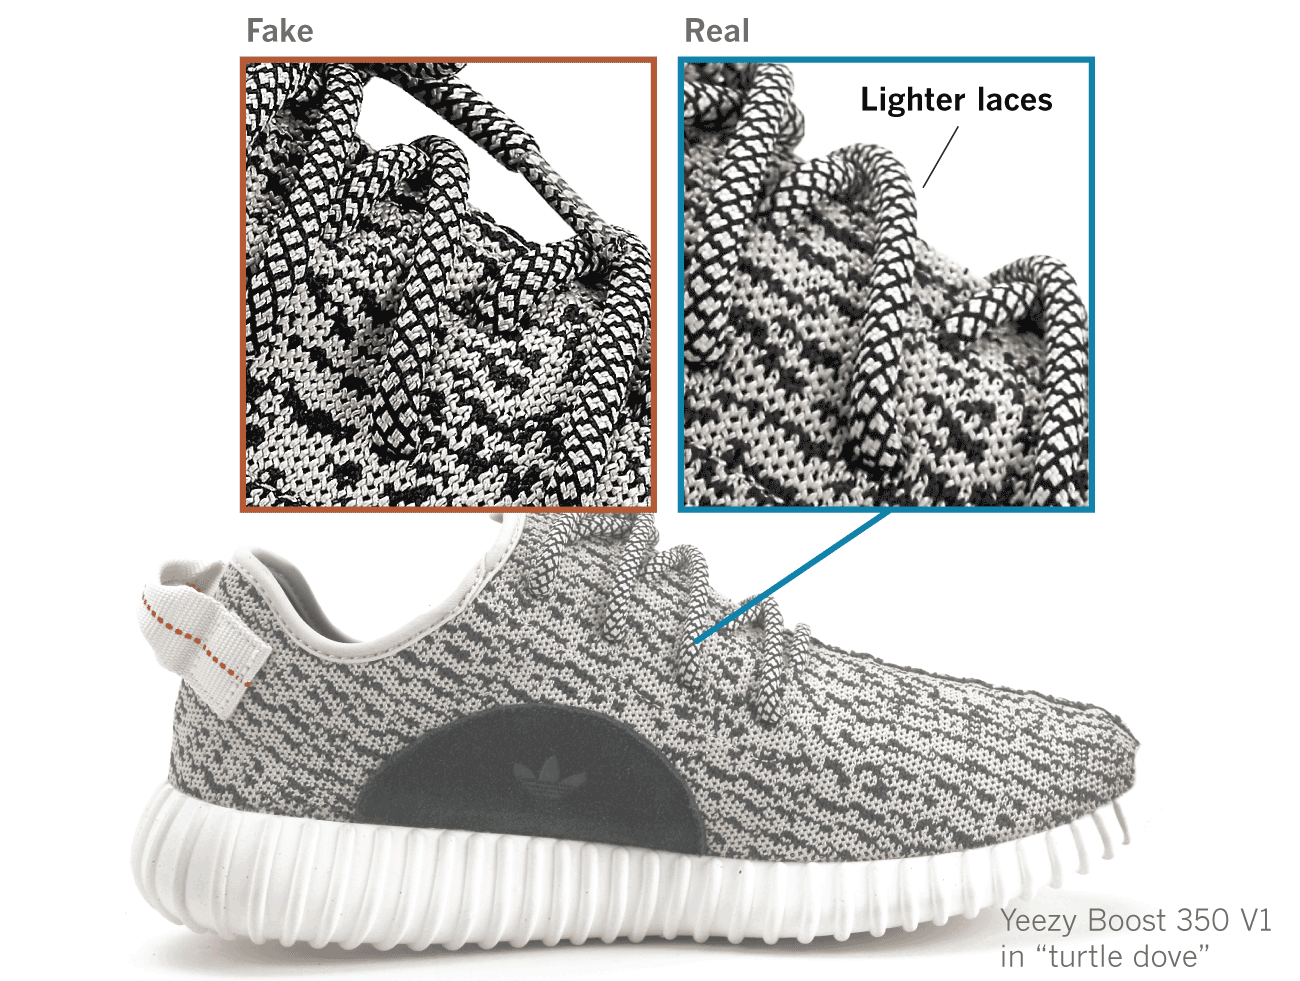 Counterfeit Yeezys And The Booming Sneaker Black Market Los Sepatu Ultra Boost 30 Replicating Highly Coveted Commercially Successful Adidas Yeezy Has Become So Sophisticated That Even Some Of Most Astute Fans Cant Tell